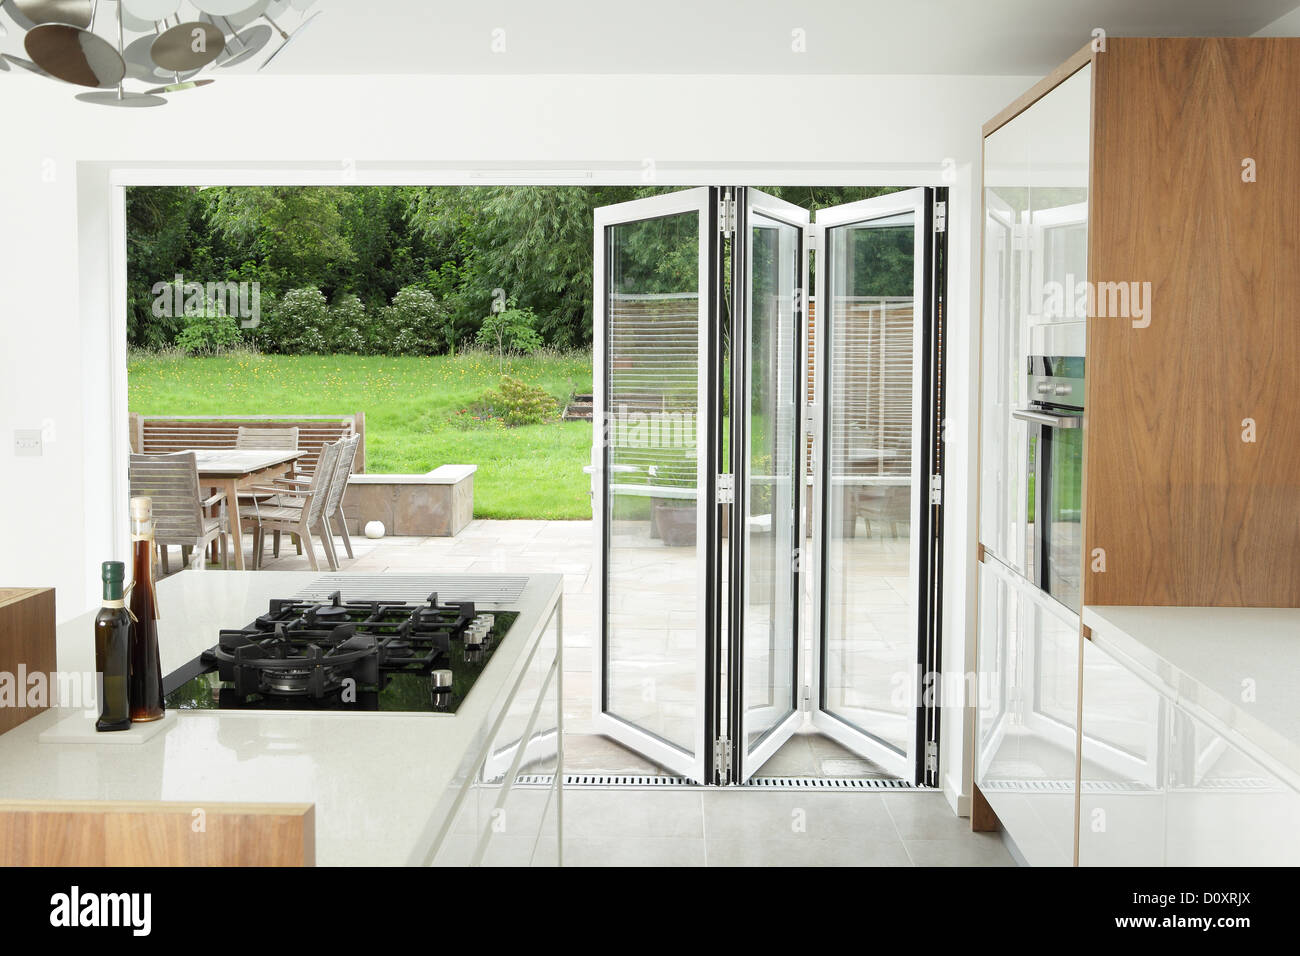 Kitchen Open Door Design Kitchen With Open Patio Doors Stock Photo 52220418 Alamy